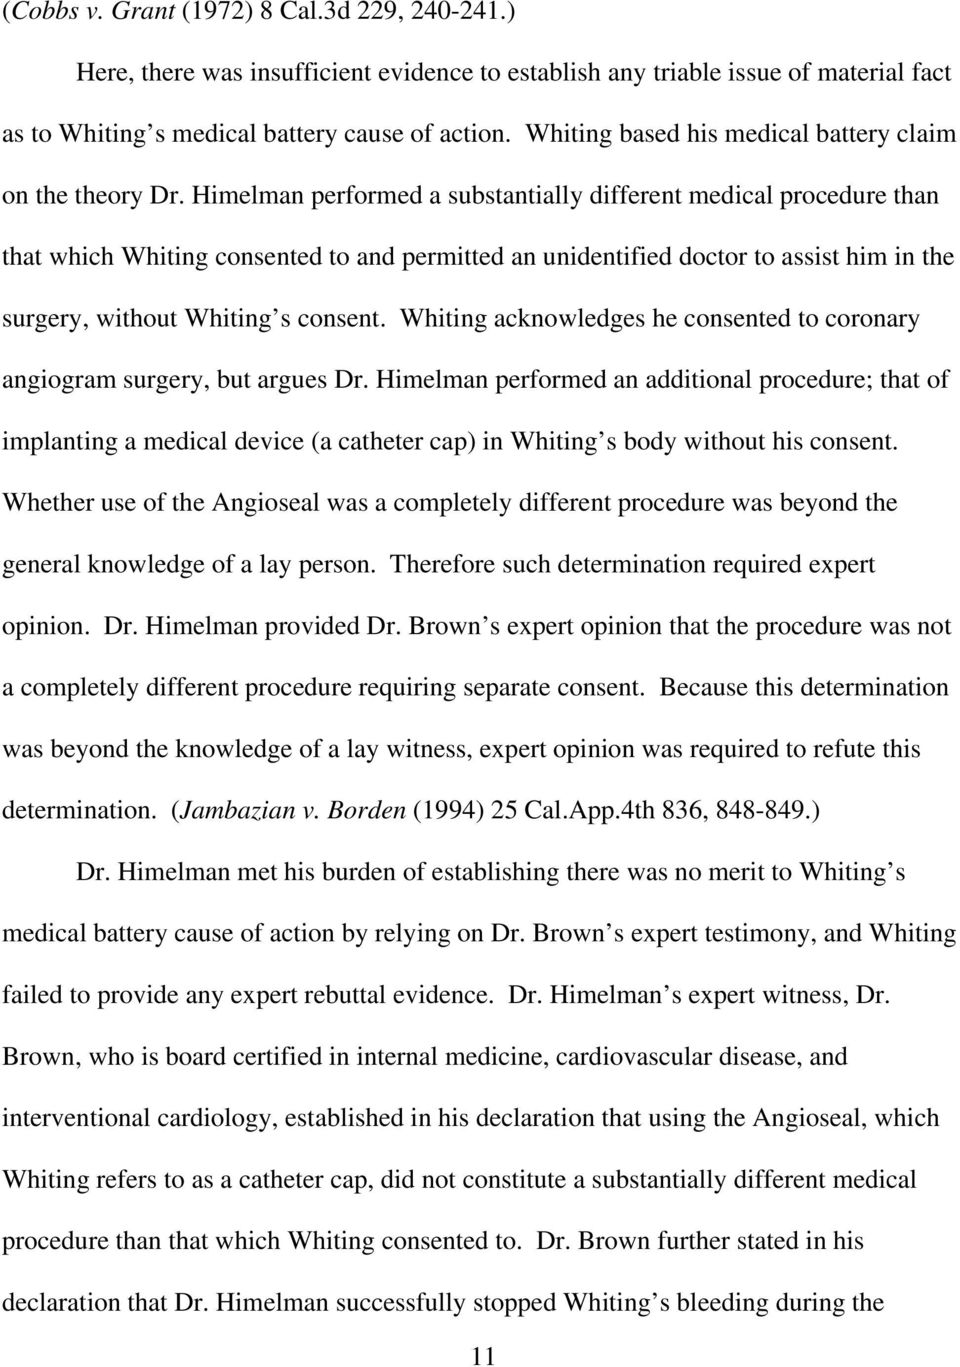 Himelman performed a substantially different medical procedure than that which Whiting consented to and permitted an unidentified doctor to assist him in the surgery, without Whiting s consent.